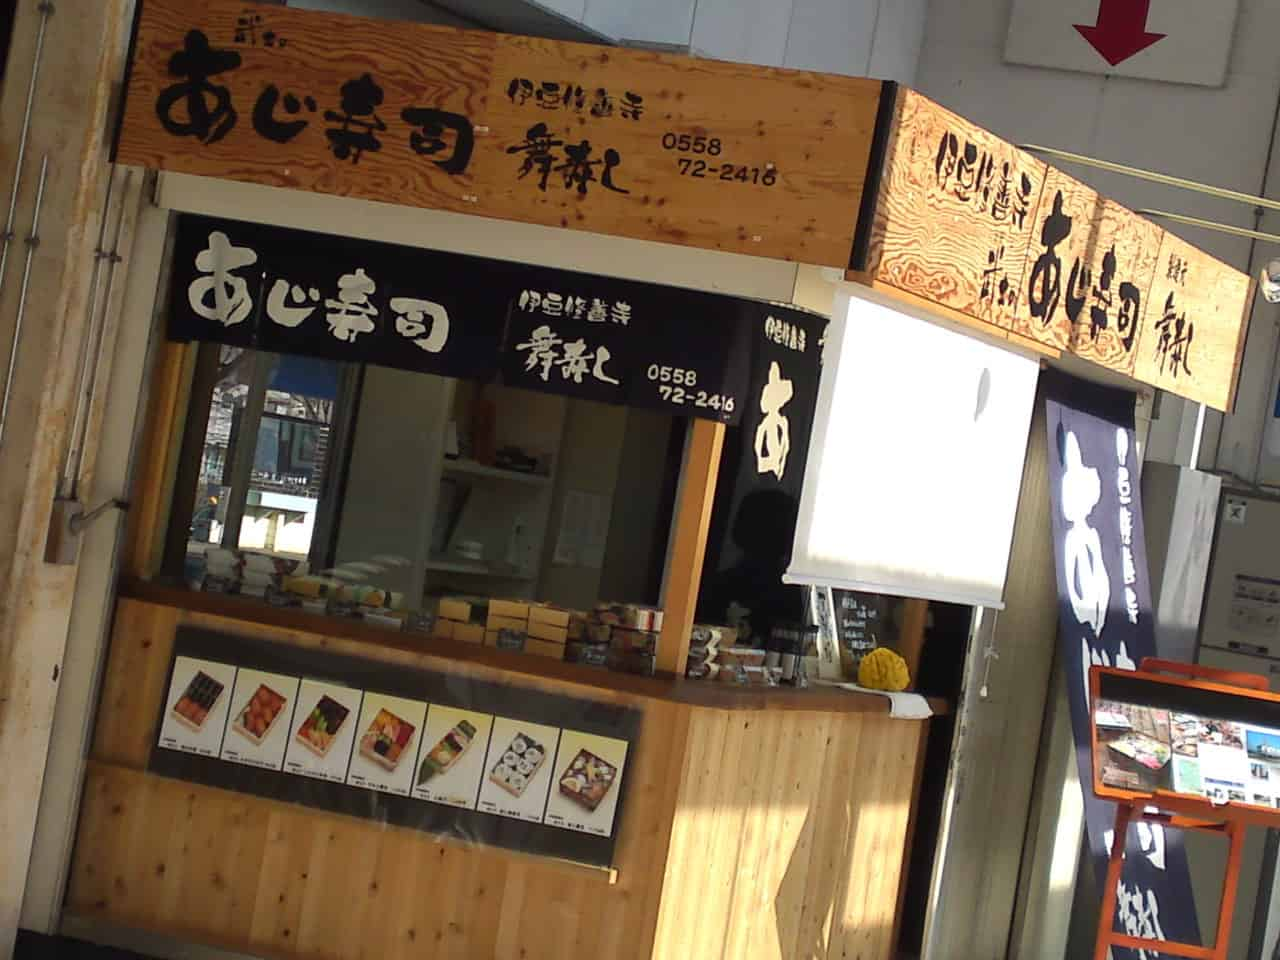 Ekiben is the abbreviation of Eki (station) and Bento (packed lunch), Aji sushi